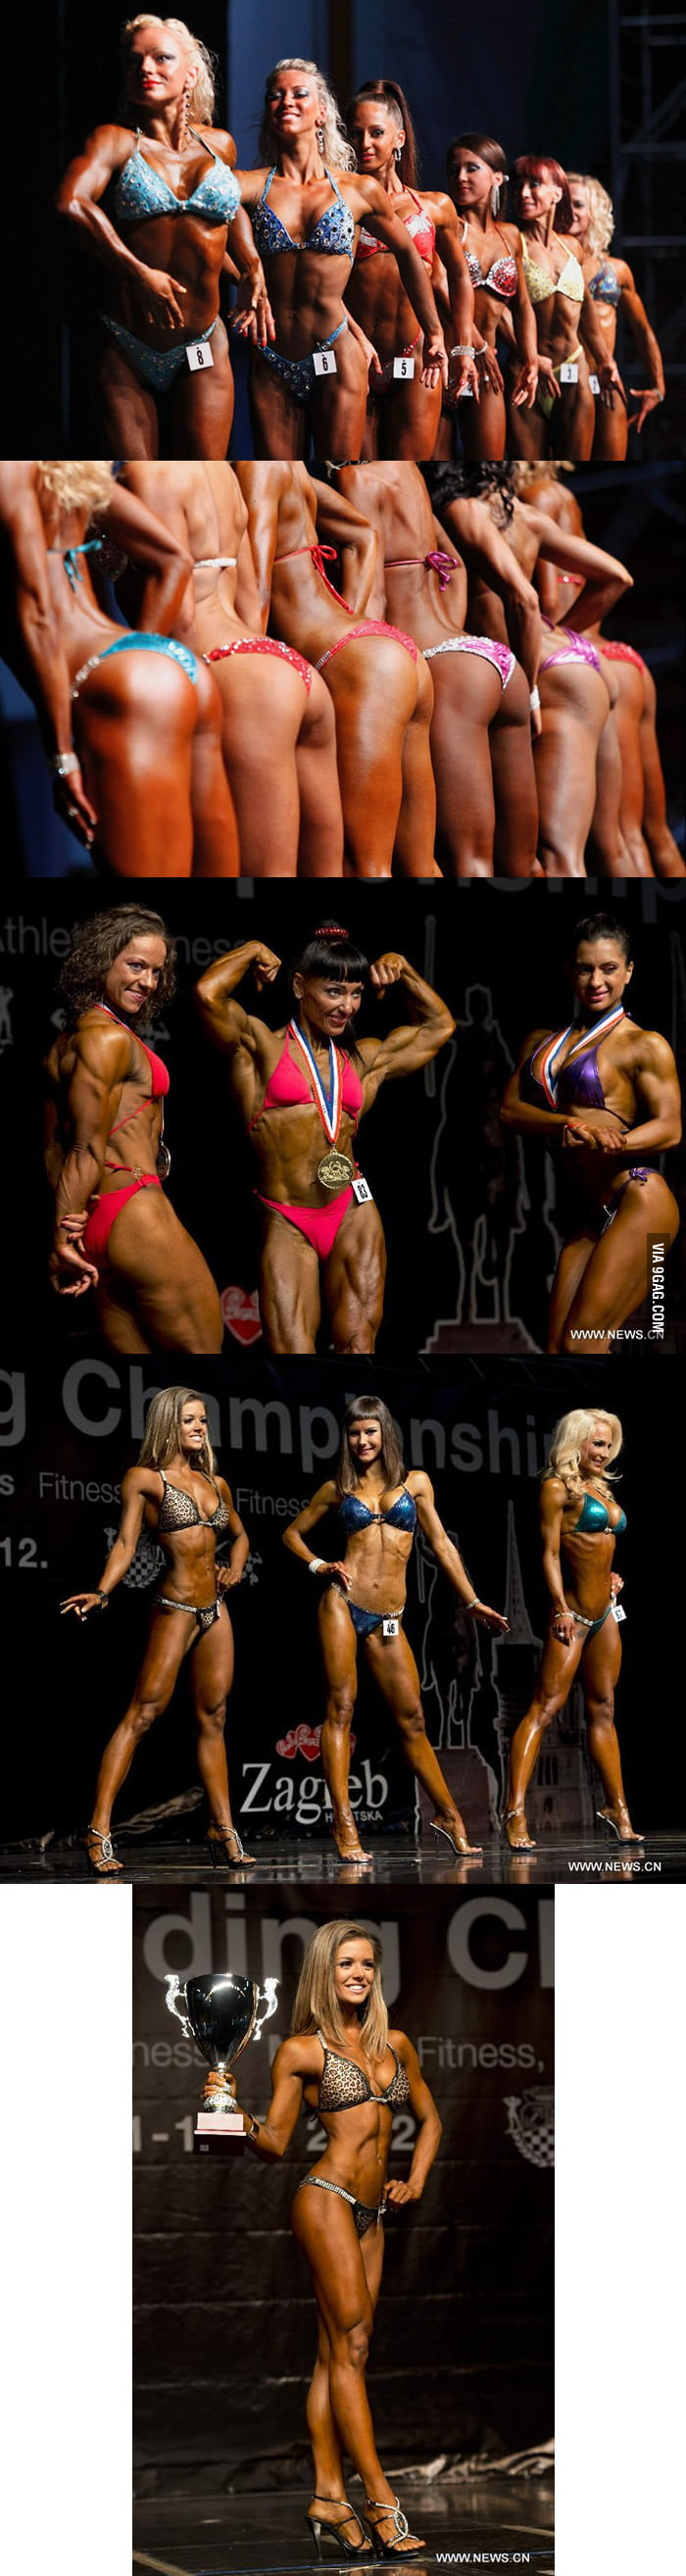 Winner of 2012 European Bodybuilding Championship